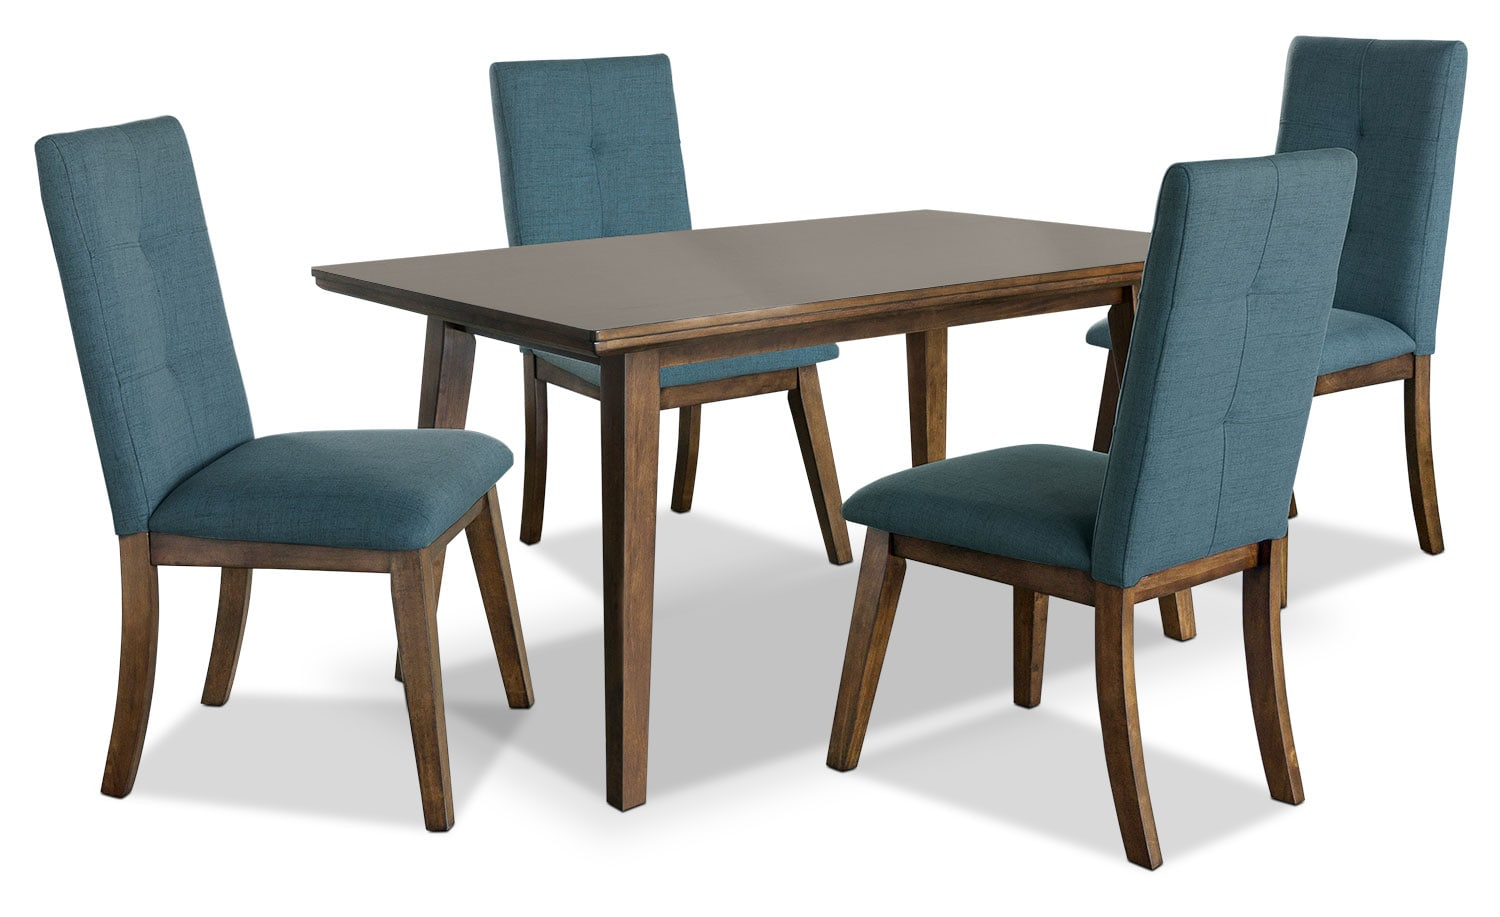 Chelsea 5-Piece Dining Package with Aqua Chairs